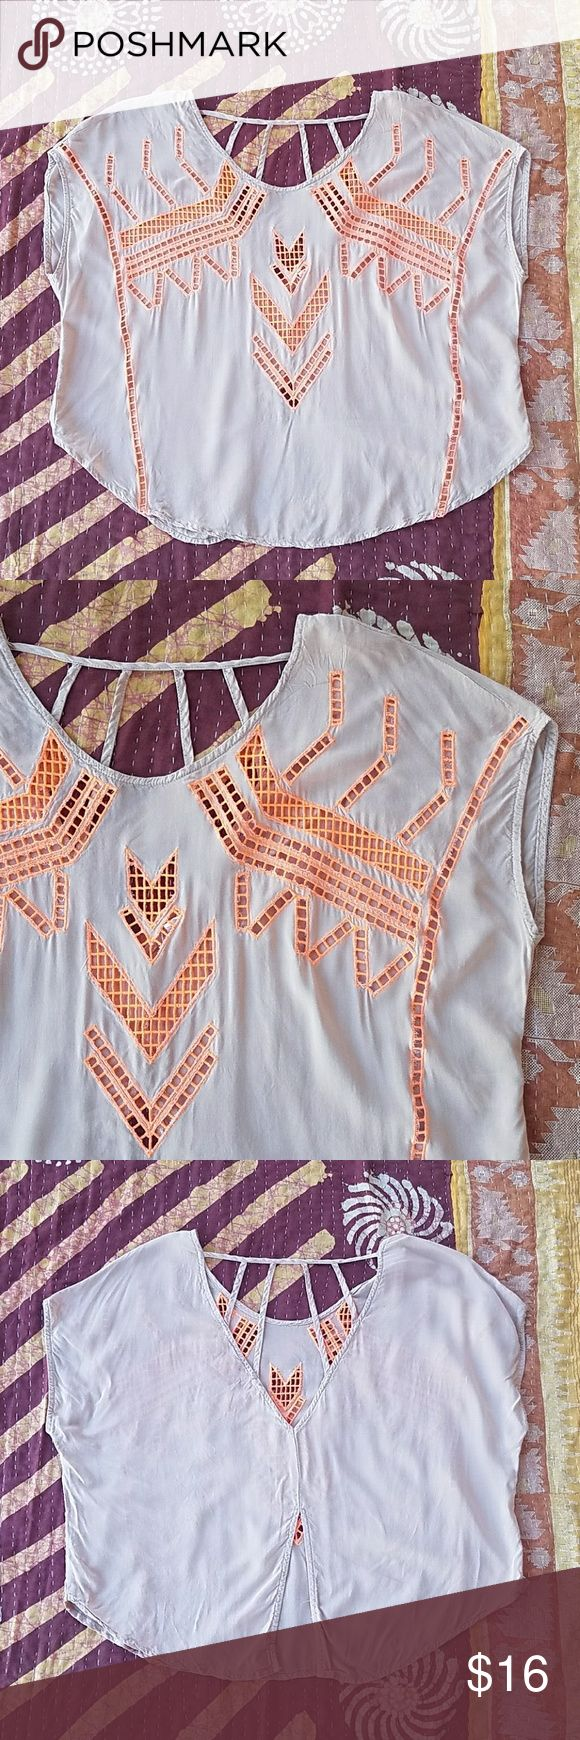 Lush Laser Cut Embroidery Oversized Open Back Top Casual and cool Beige cotton with neon orange embroidery down the front Strappy back with open vent at hem Has an oversized silhouette to it Made by Urban Outfitters brand Lush size small In good condition Tops Blouses